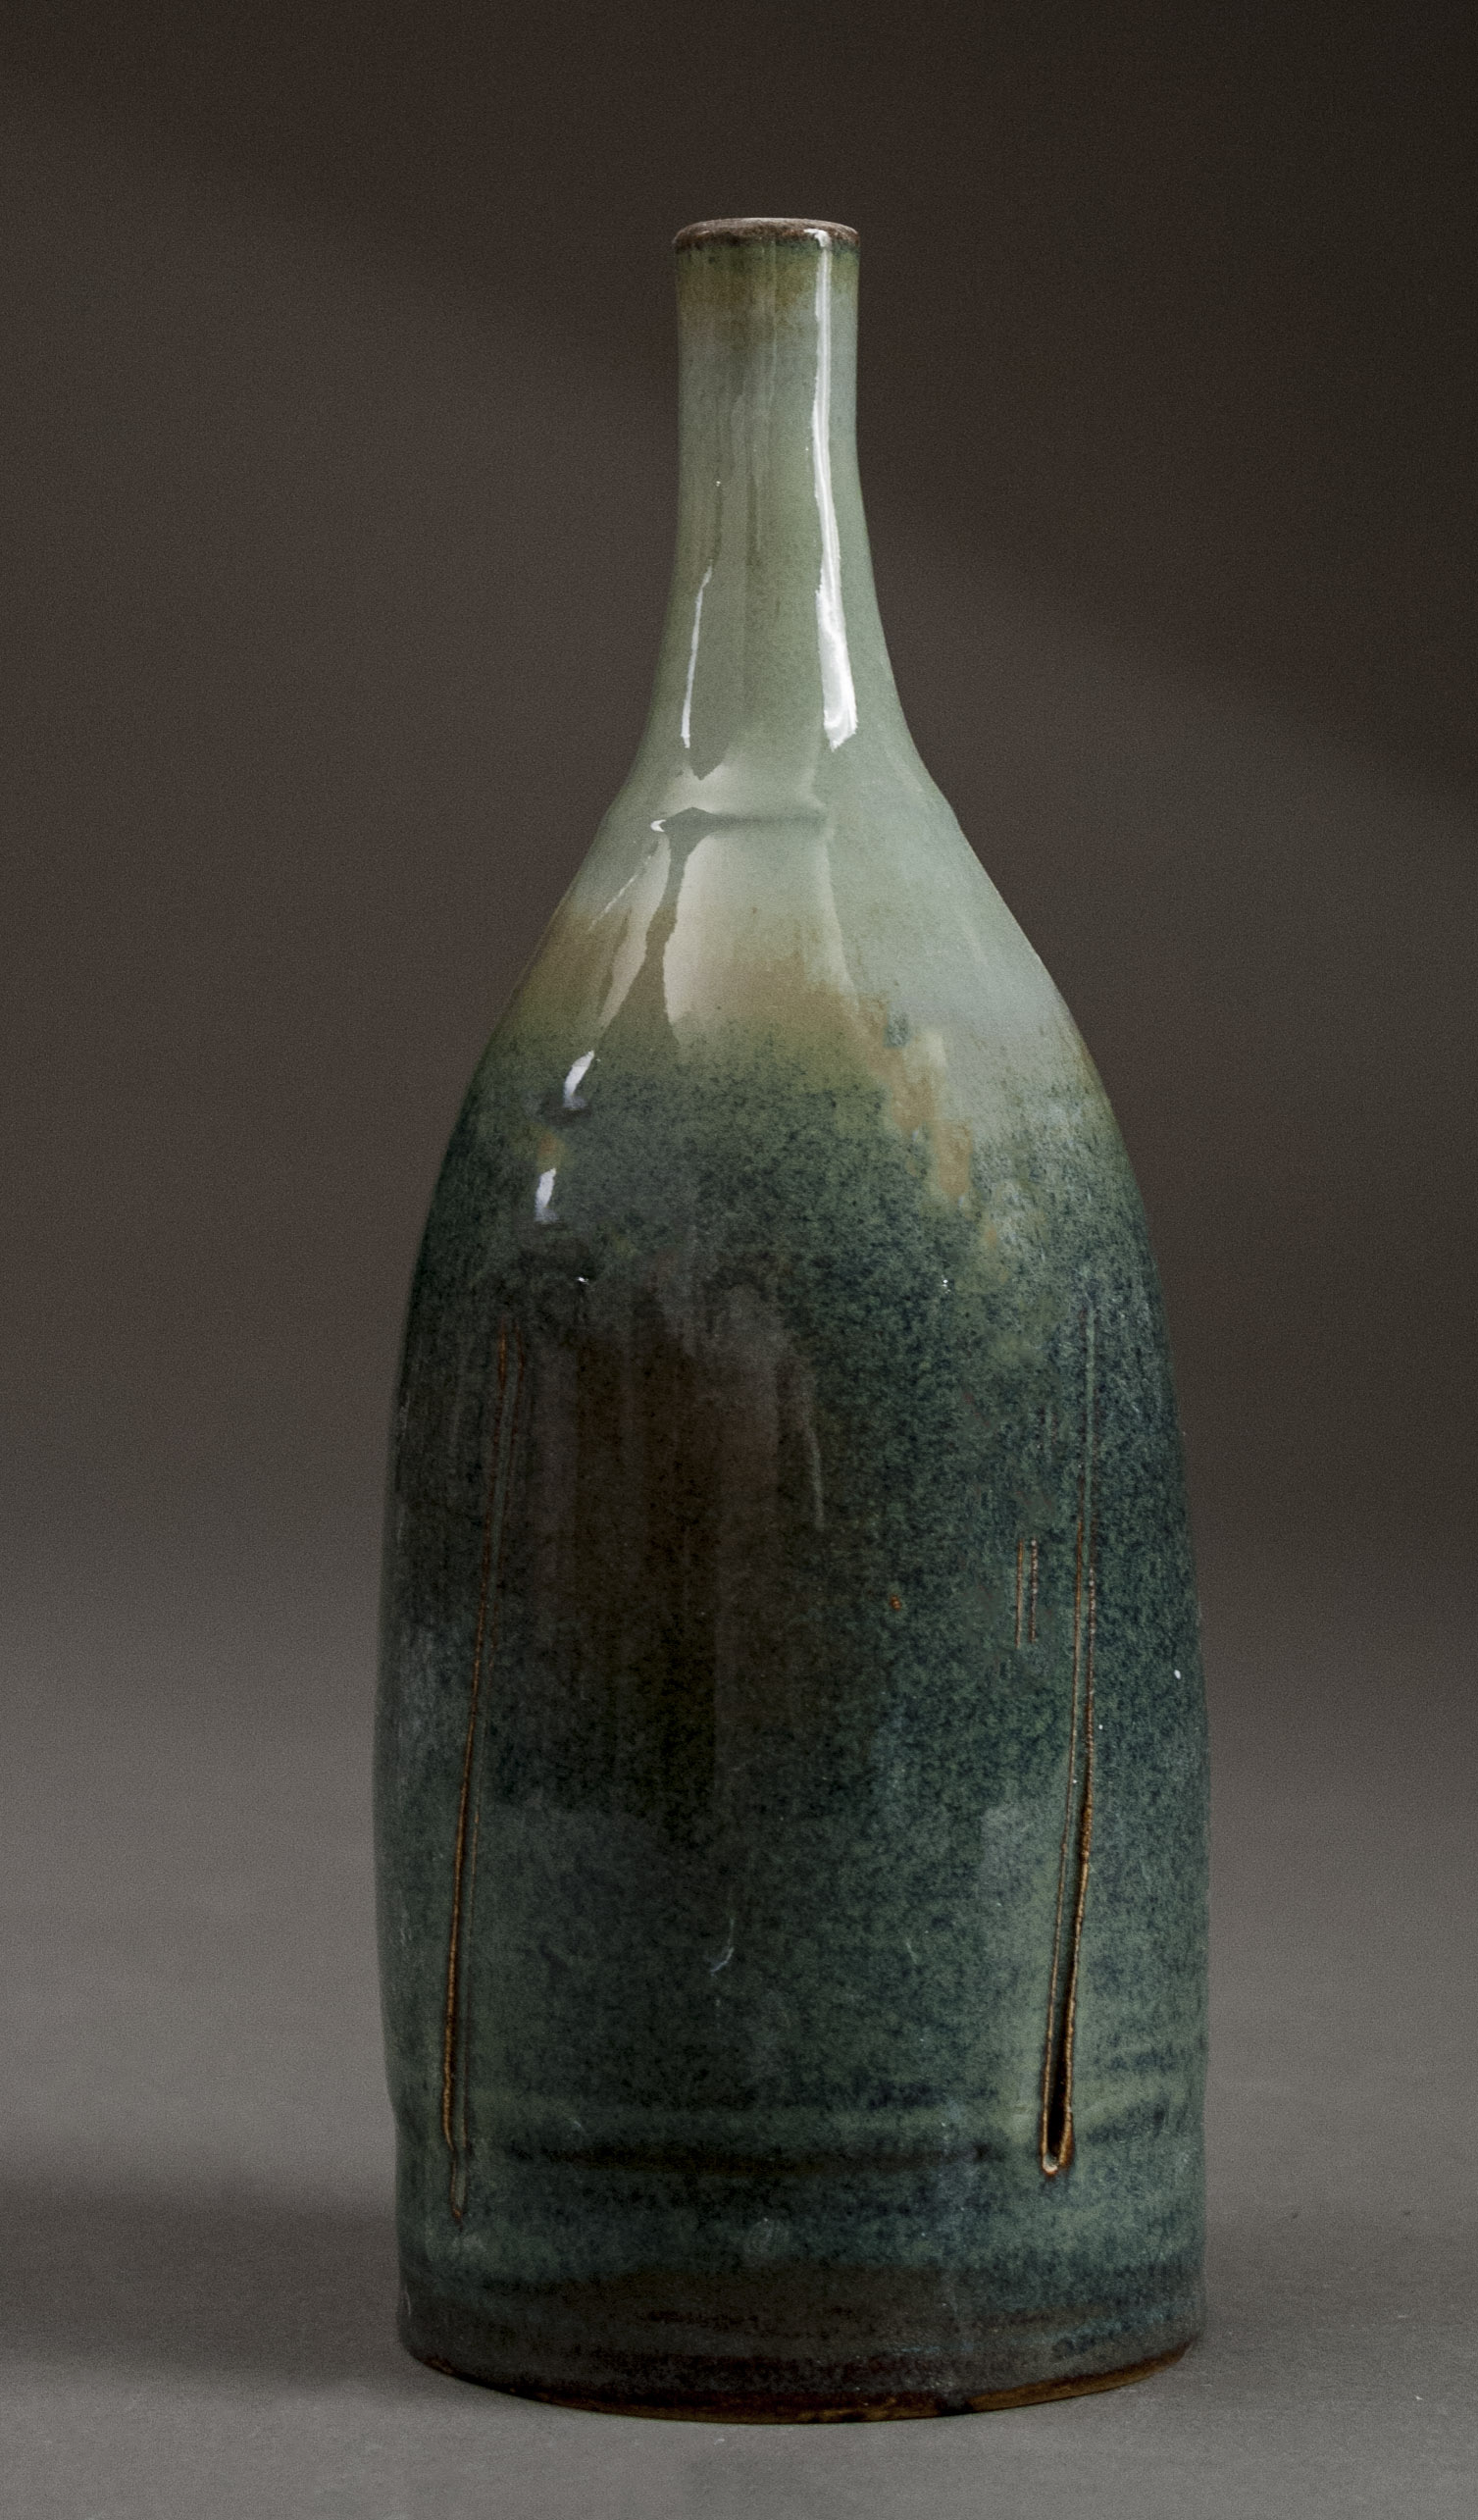 Bottle by Charlie W.